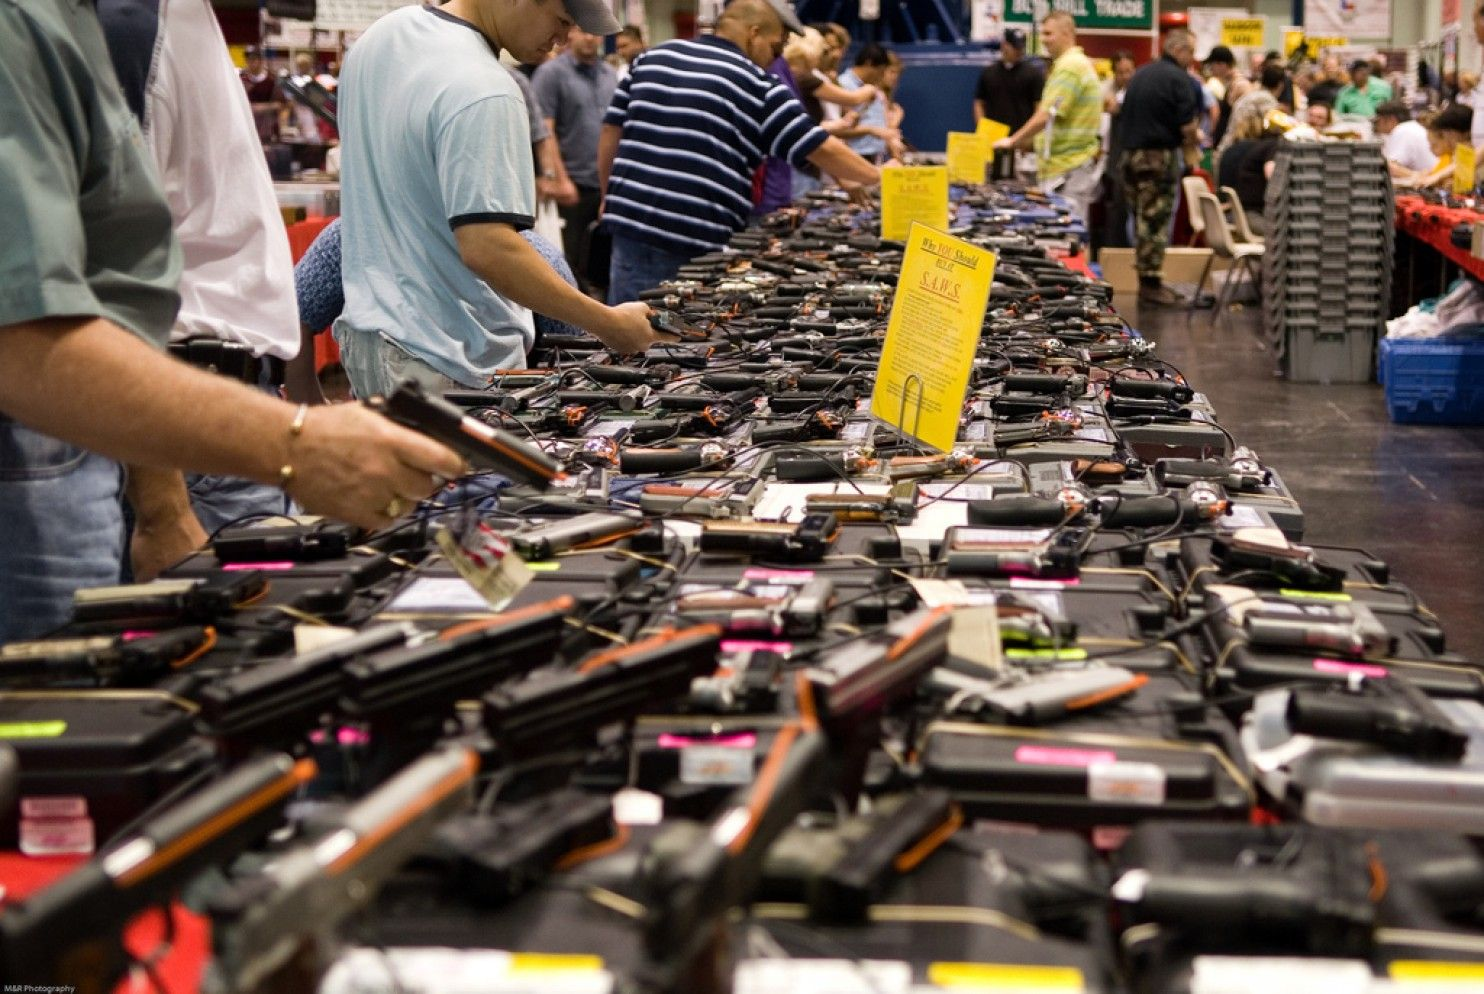 There are now more guns than people in the United States - The Washington Post